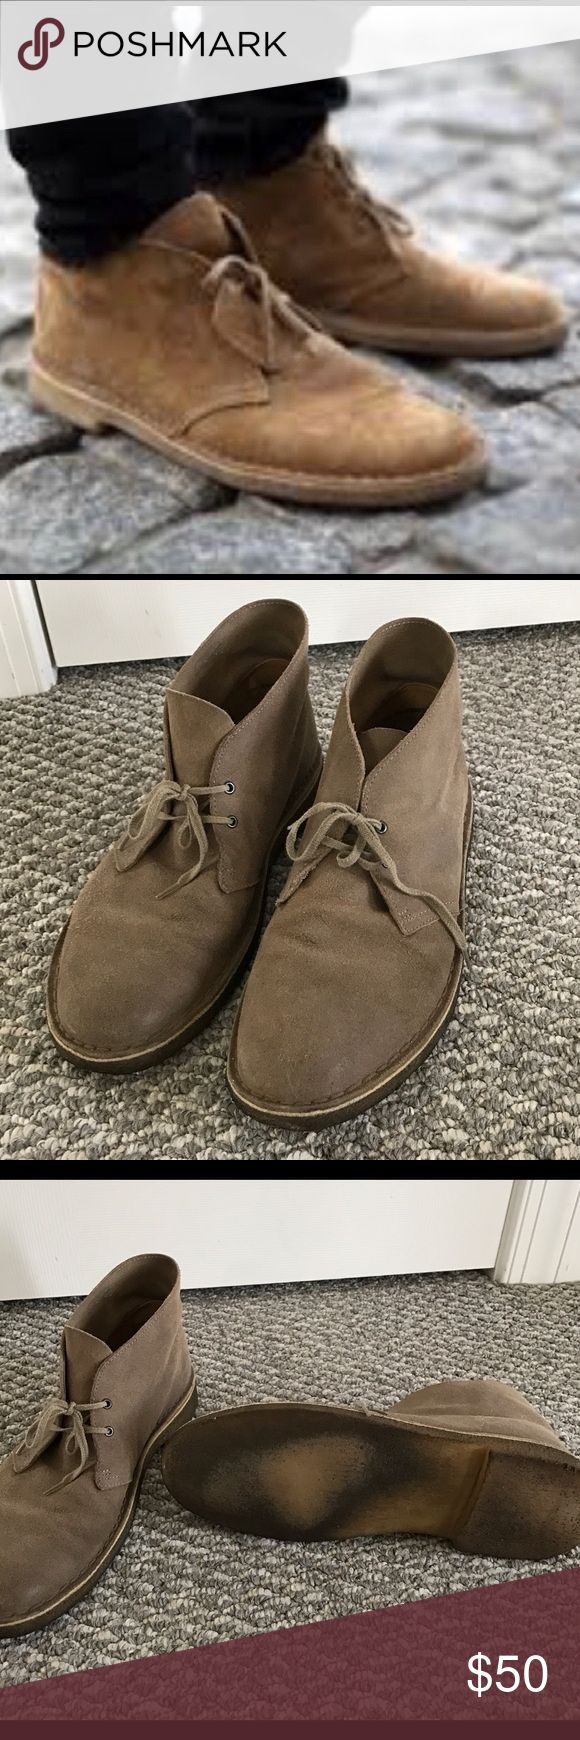 Mens Clarks Desert Boots Mens Clarks Desert Boots, Taupe Suede, Size 12, very gently used, worn only a few times, a great deal! Clarks Shoes